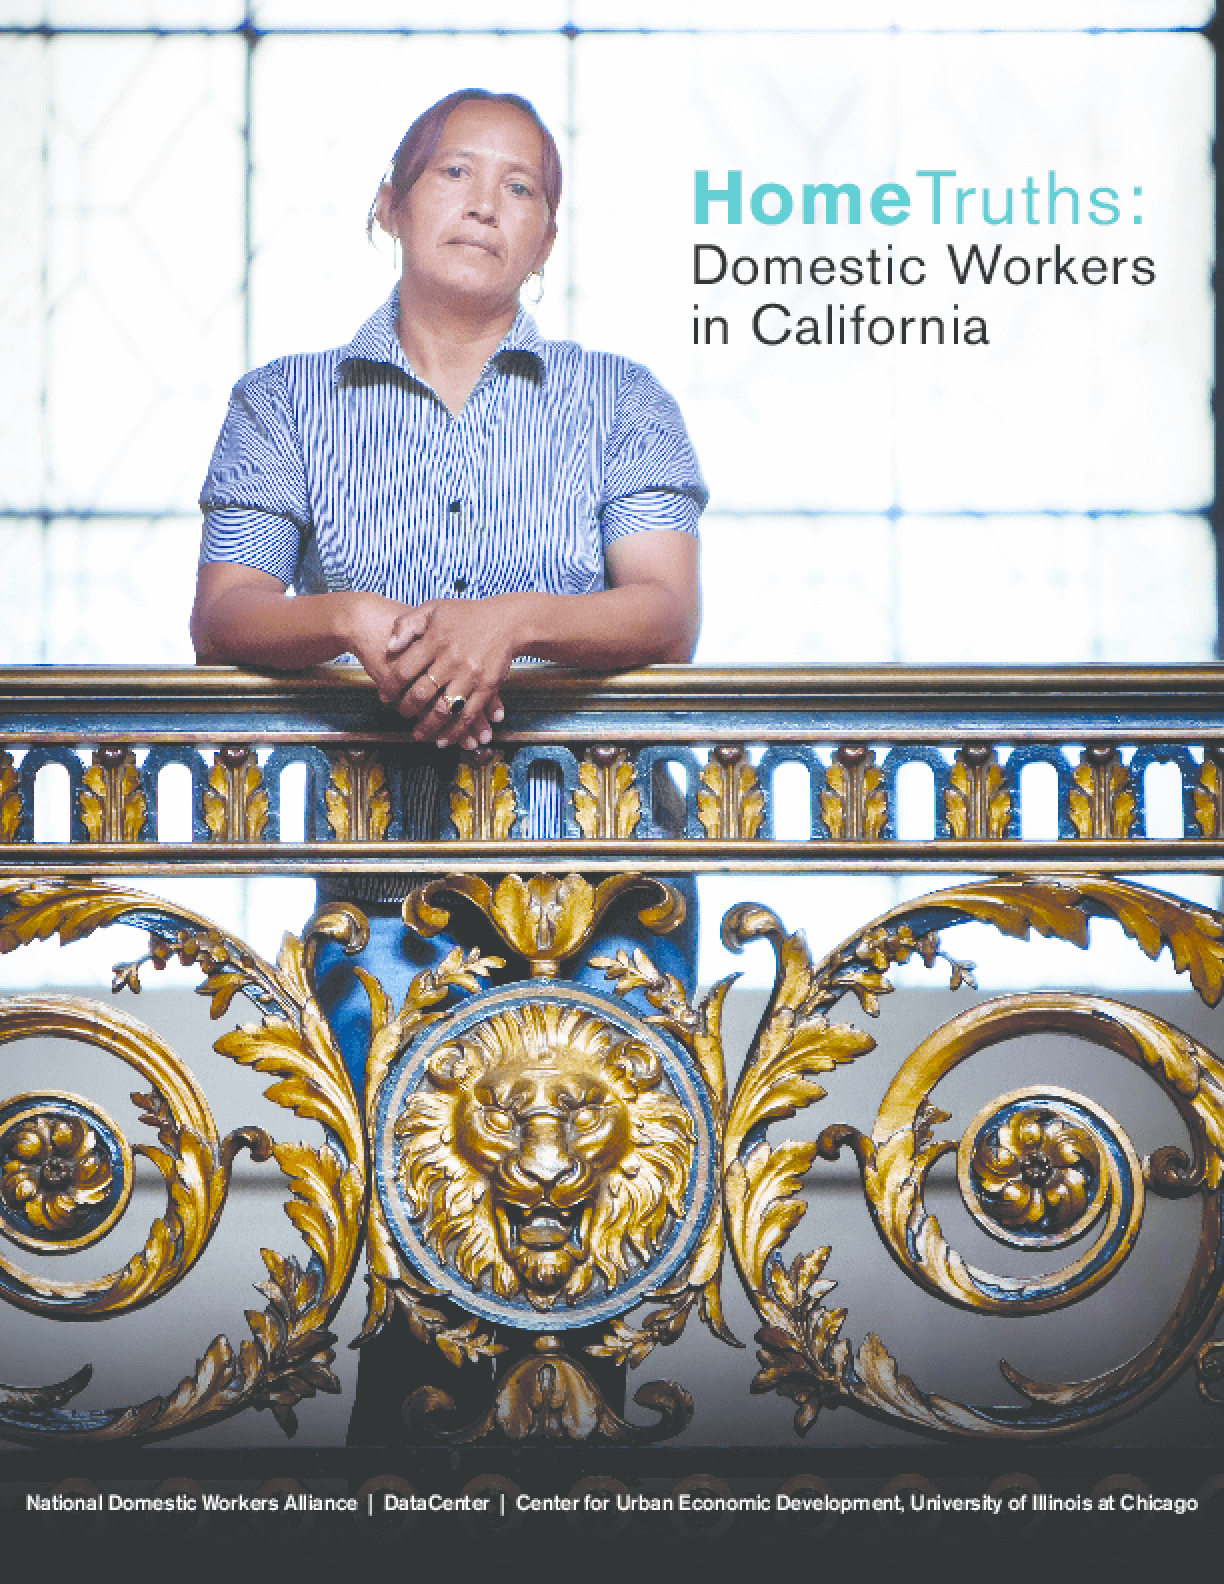 HomeTruths: Domestic Workers in California